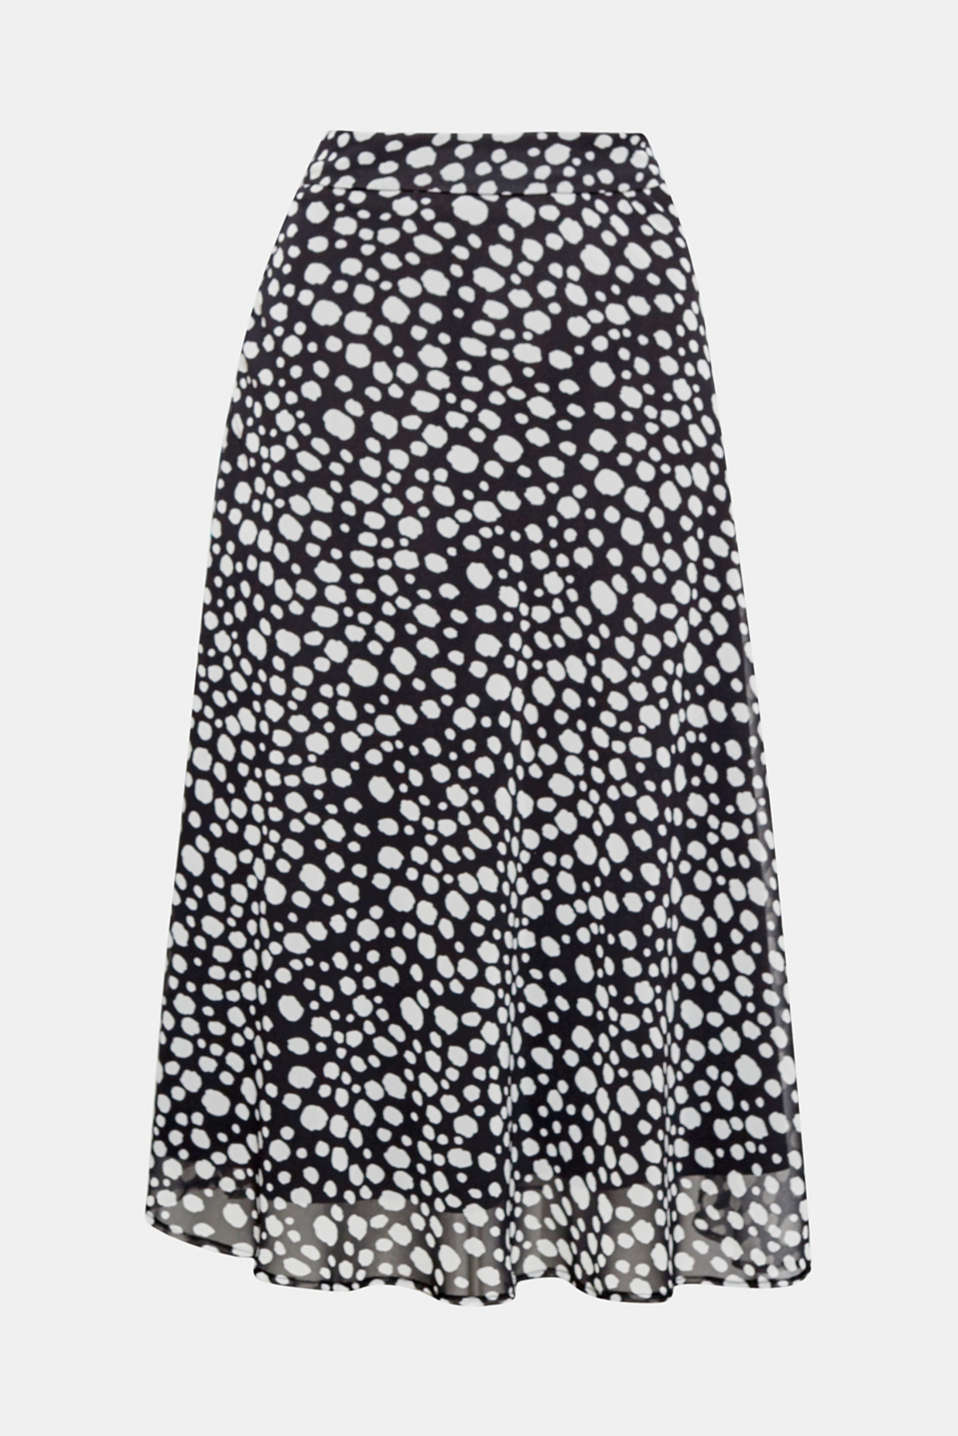 This swirling chiffon midi skirt with an uneven polka dot pattern oozes trendy femininity!